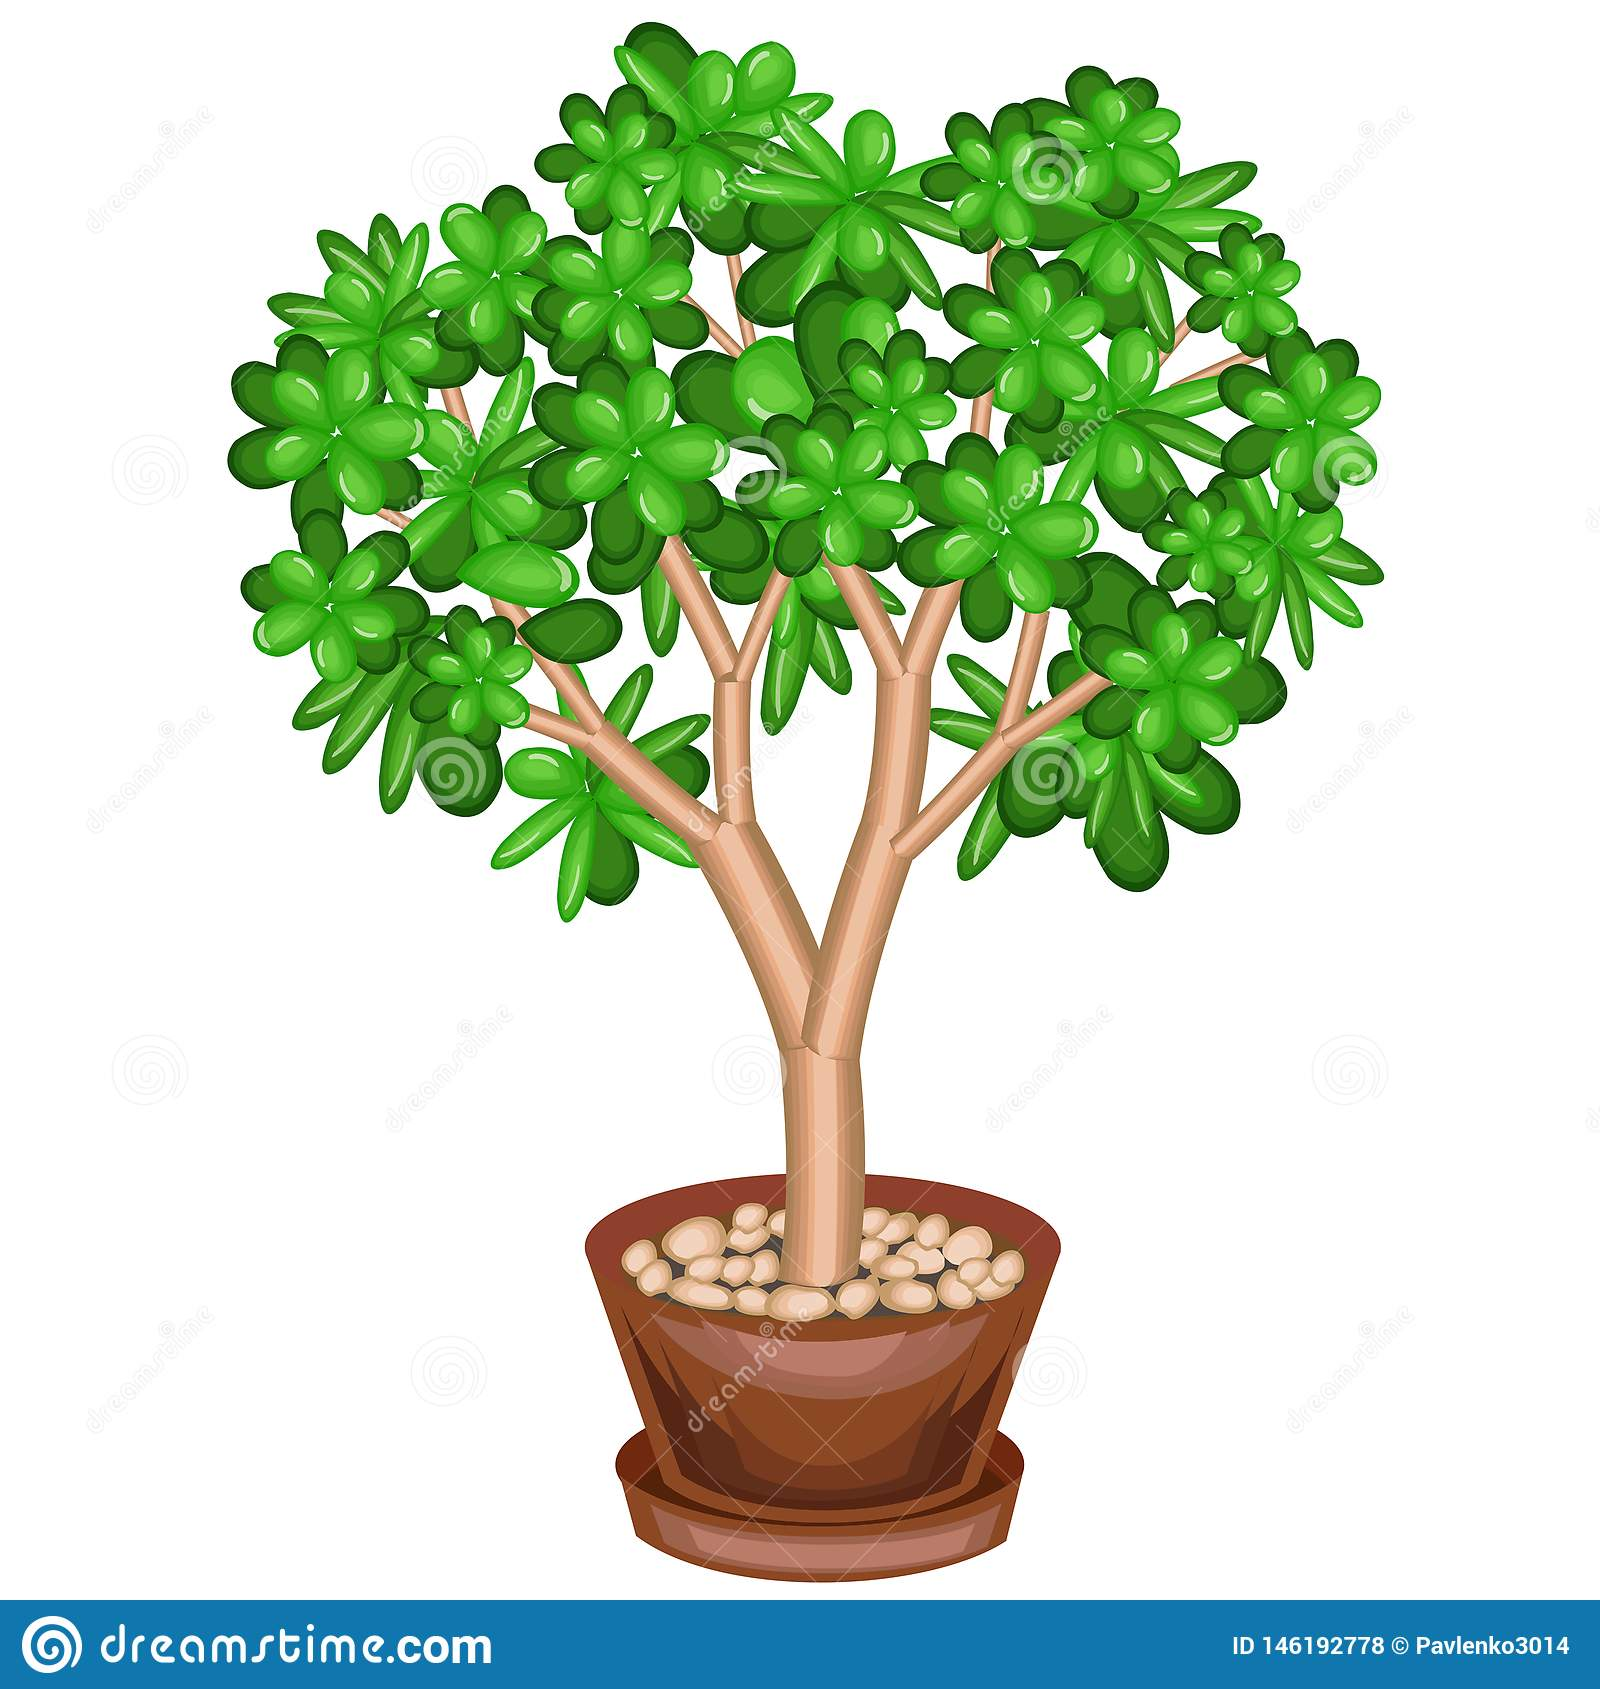 A potted plant. Green money tree, Crassulaceae, with fleshy green leaves. Symbol of happiness, luck and wealth. Pleasant